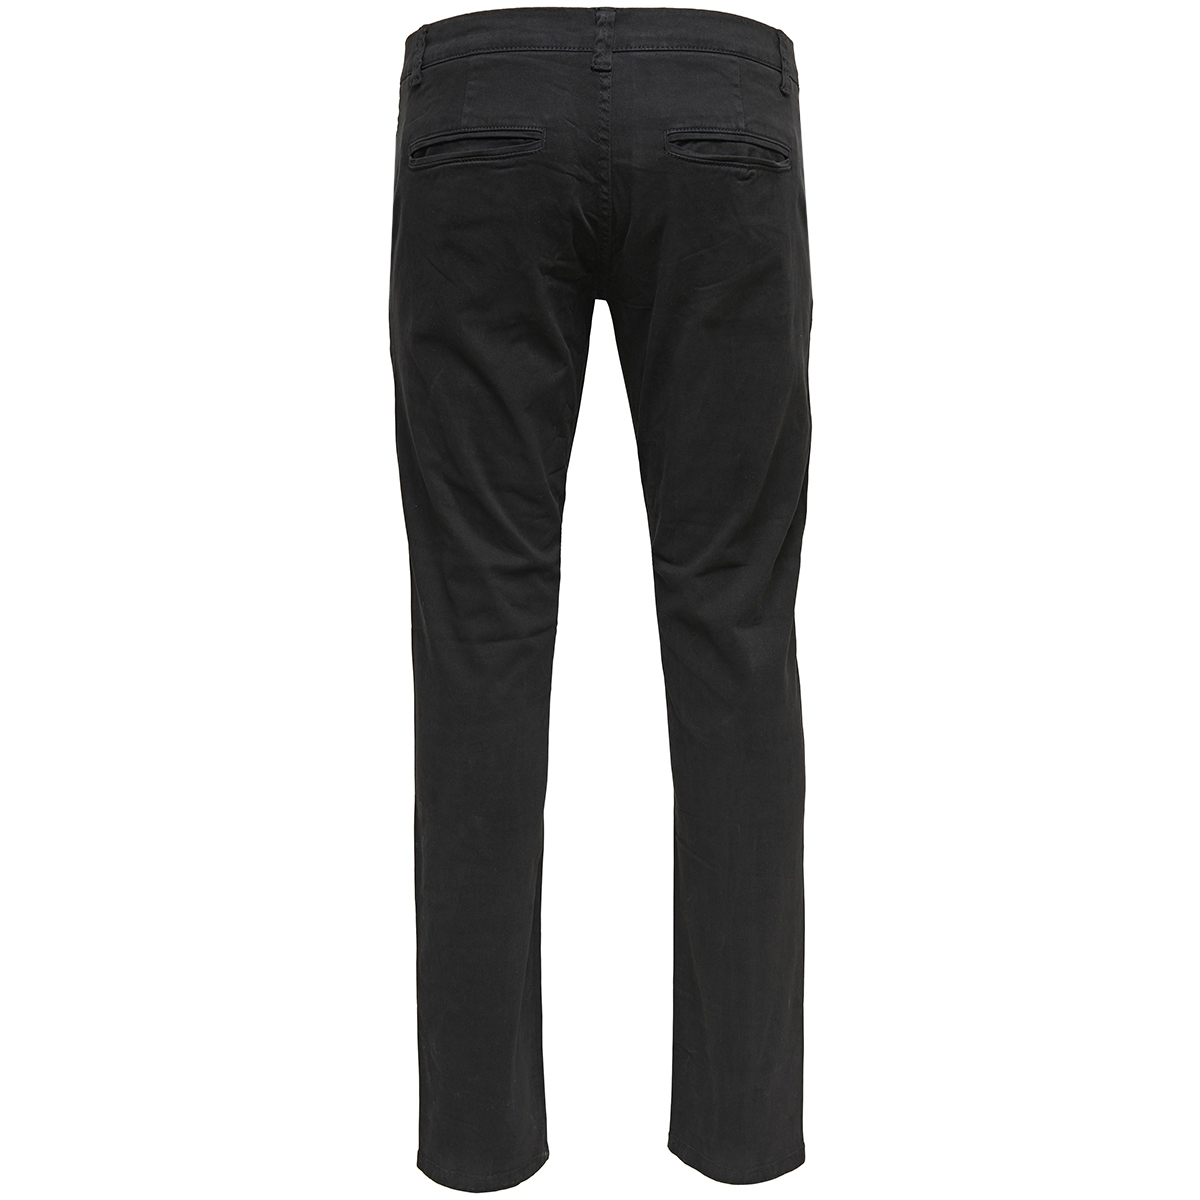 onstarp chino pk 1462 noos 22011462 only & sons broek black